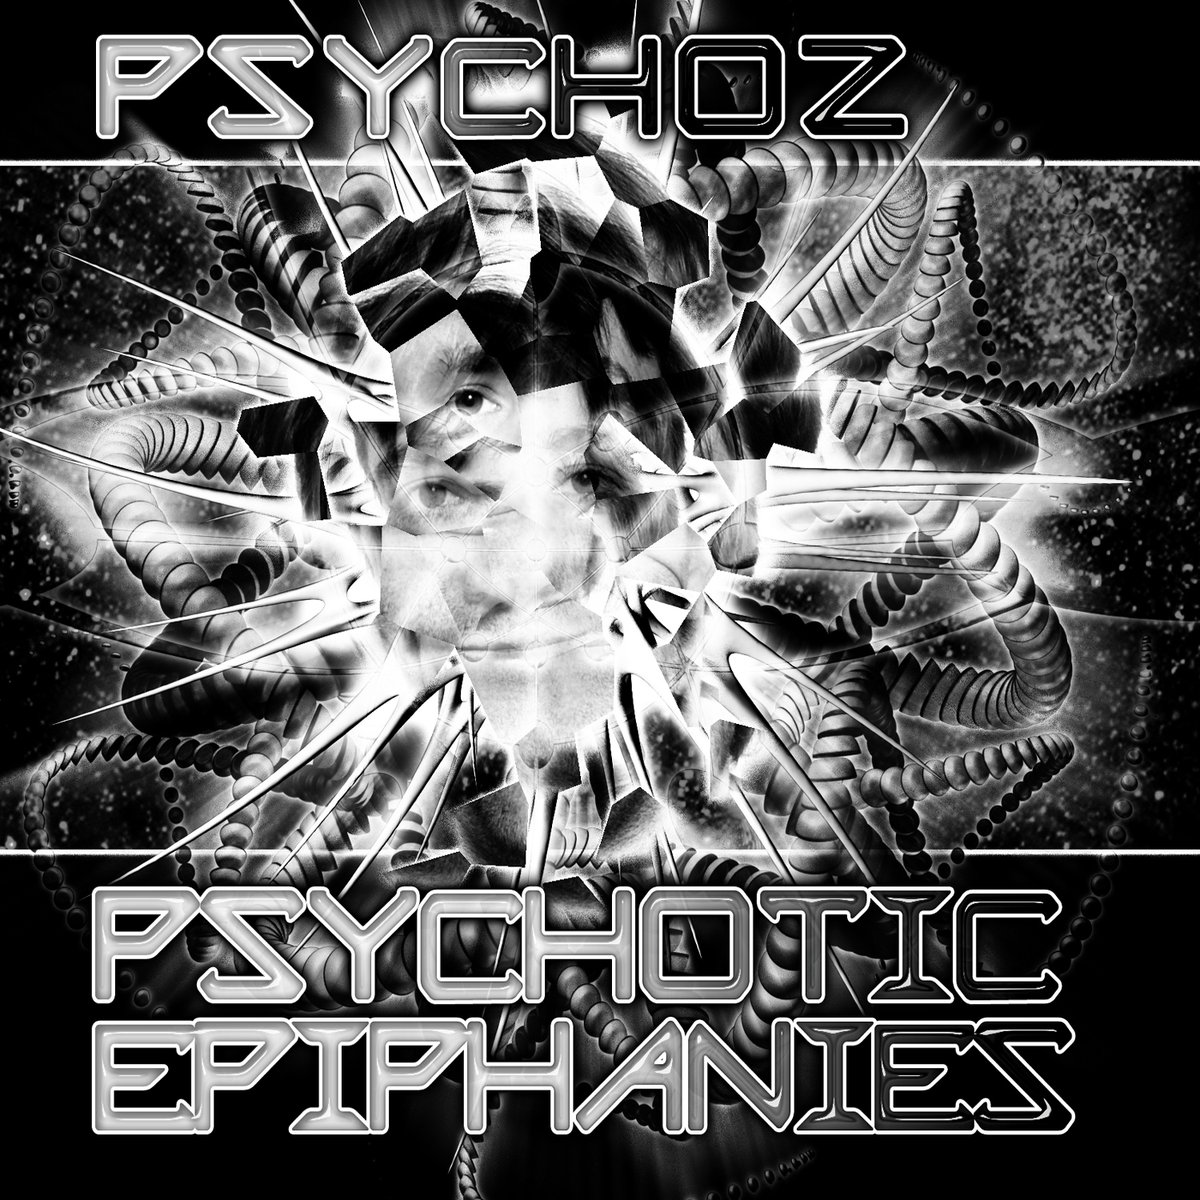 Psychoz - New World @ 'Psychotic Epiphanies' album (electronic, goa)